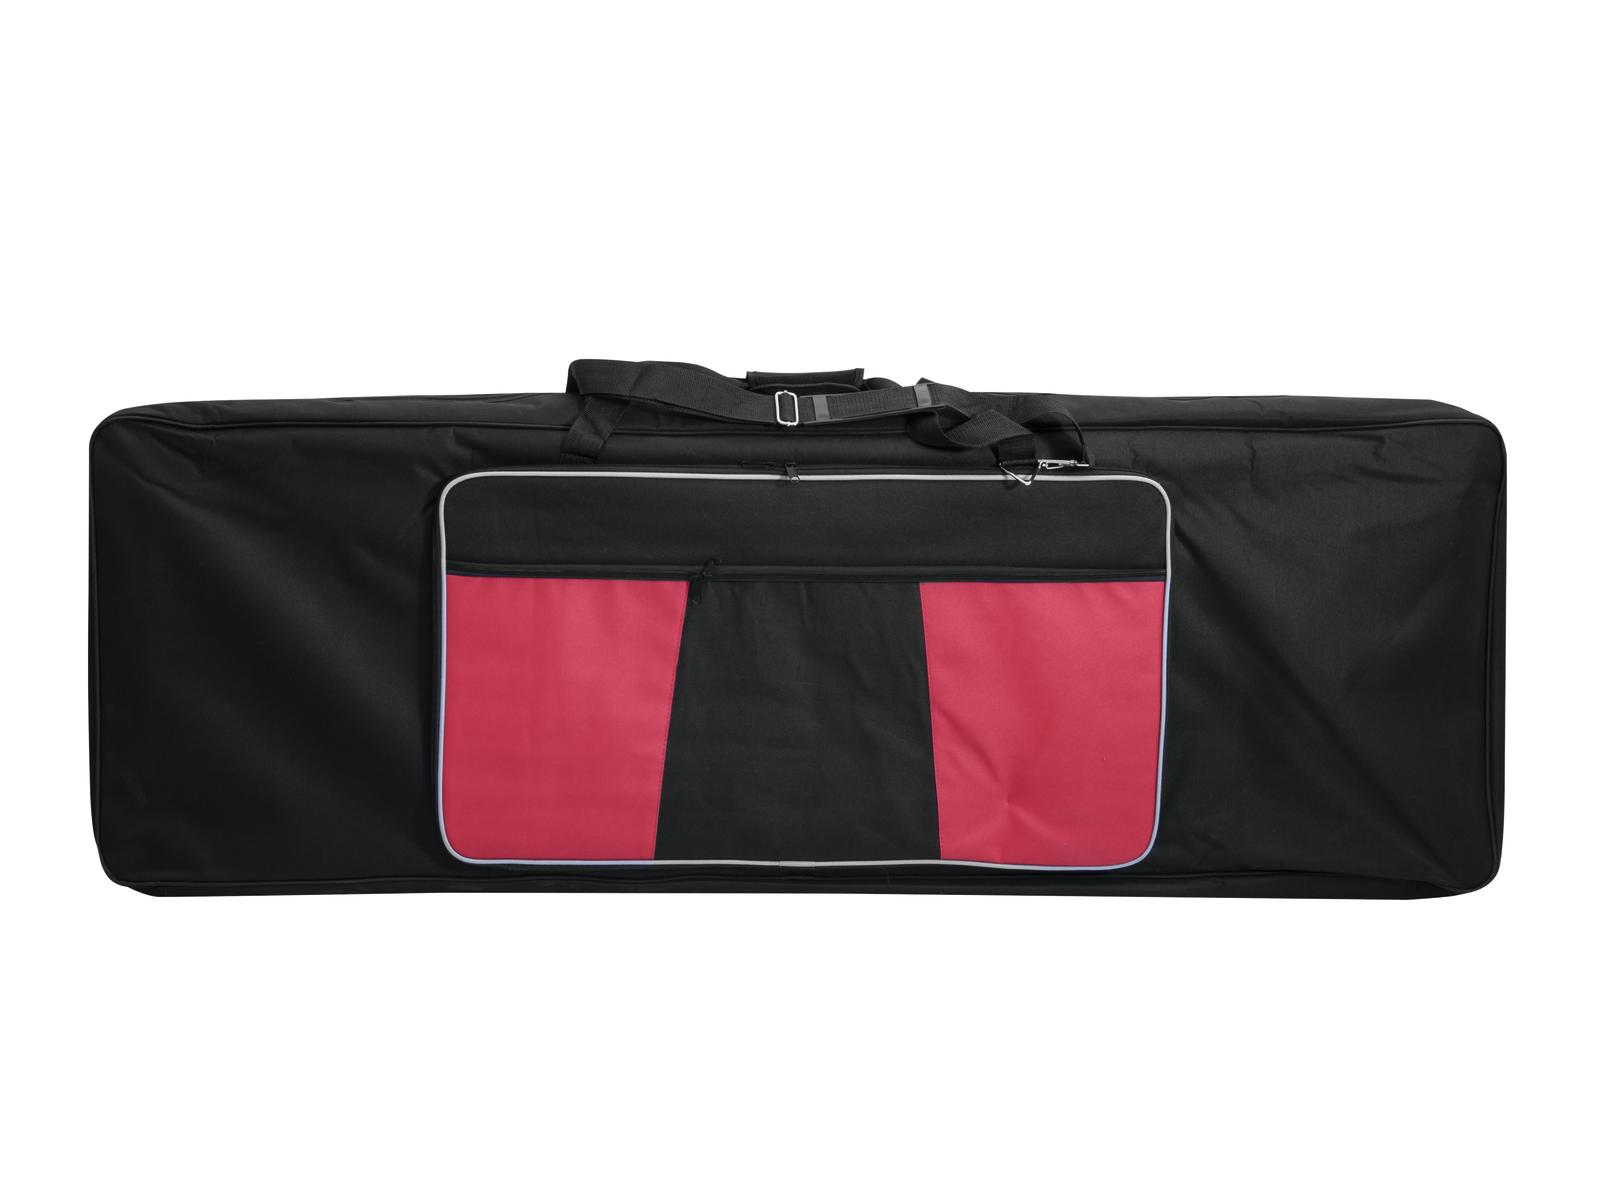 DIMAVERY Soft-Bag für Keyboard, XL